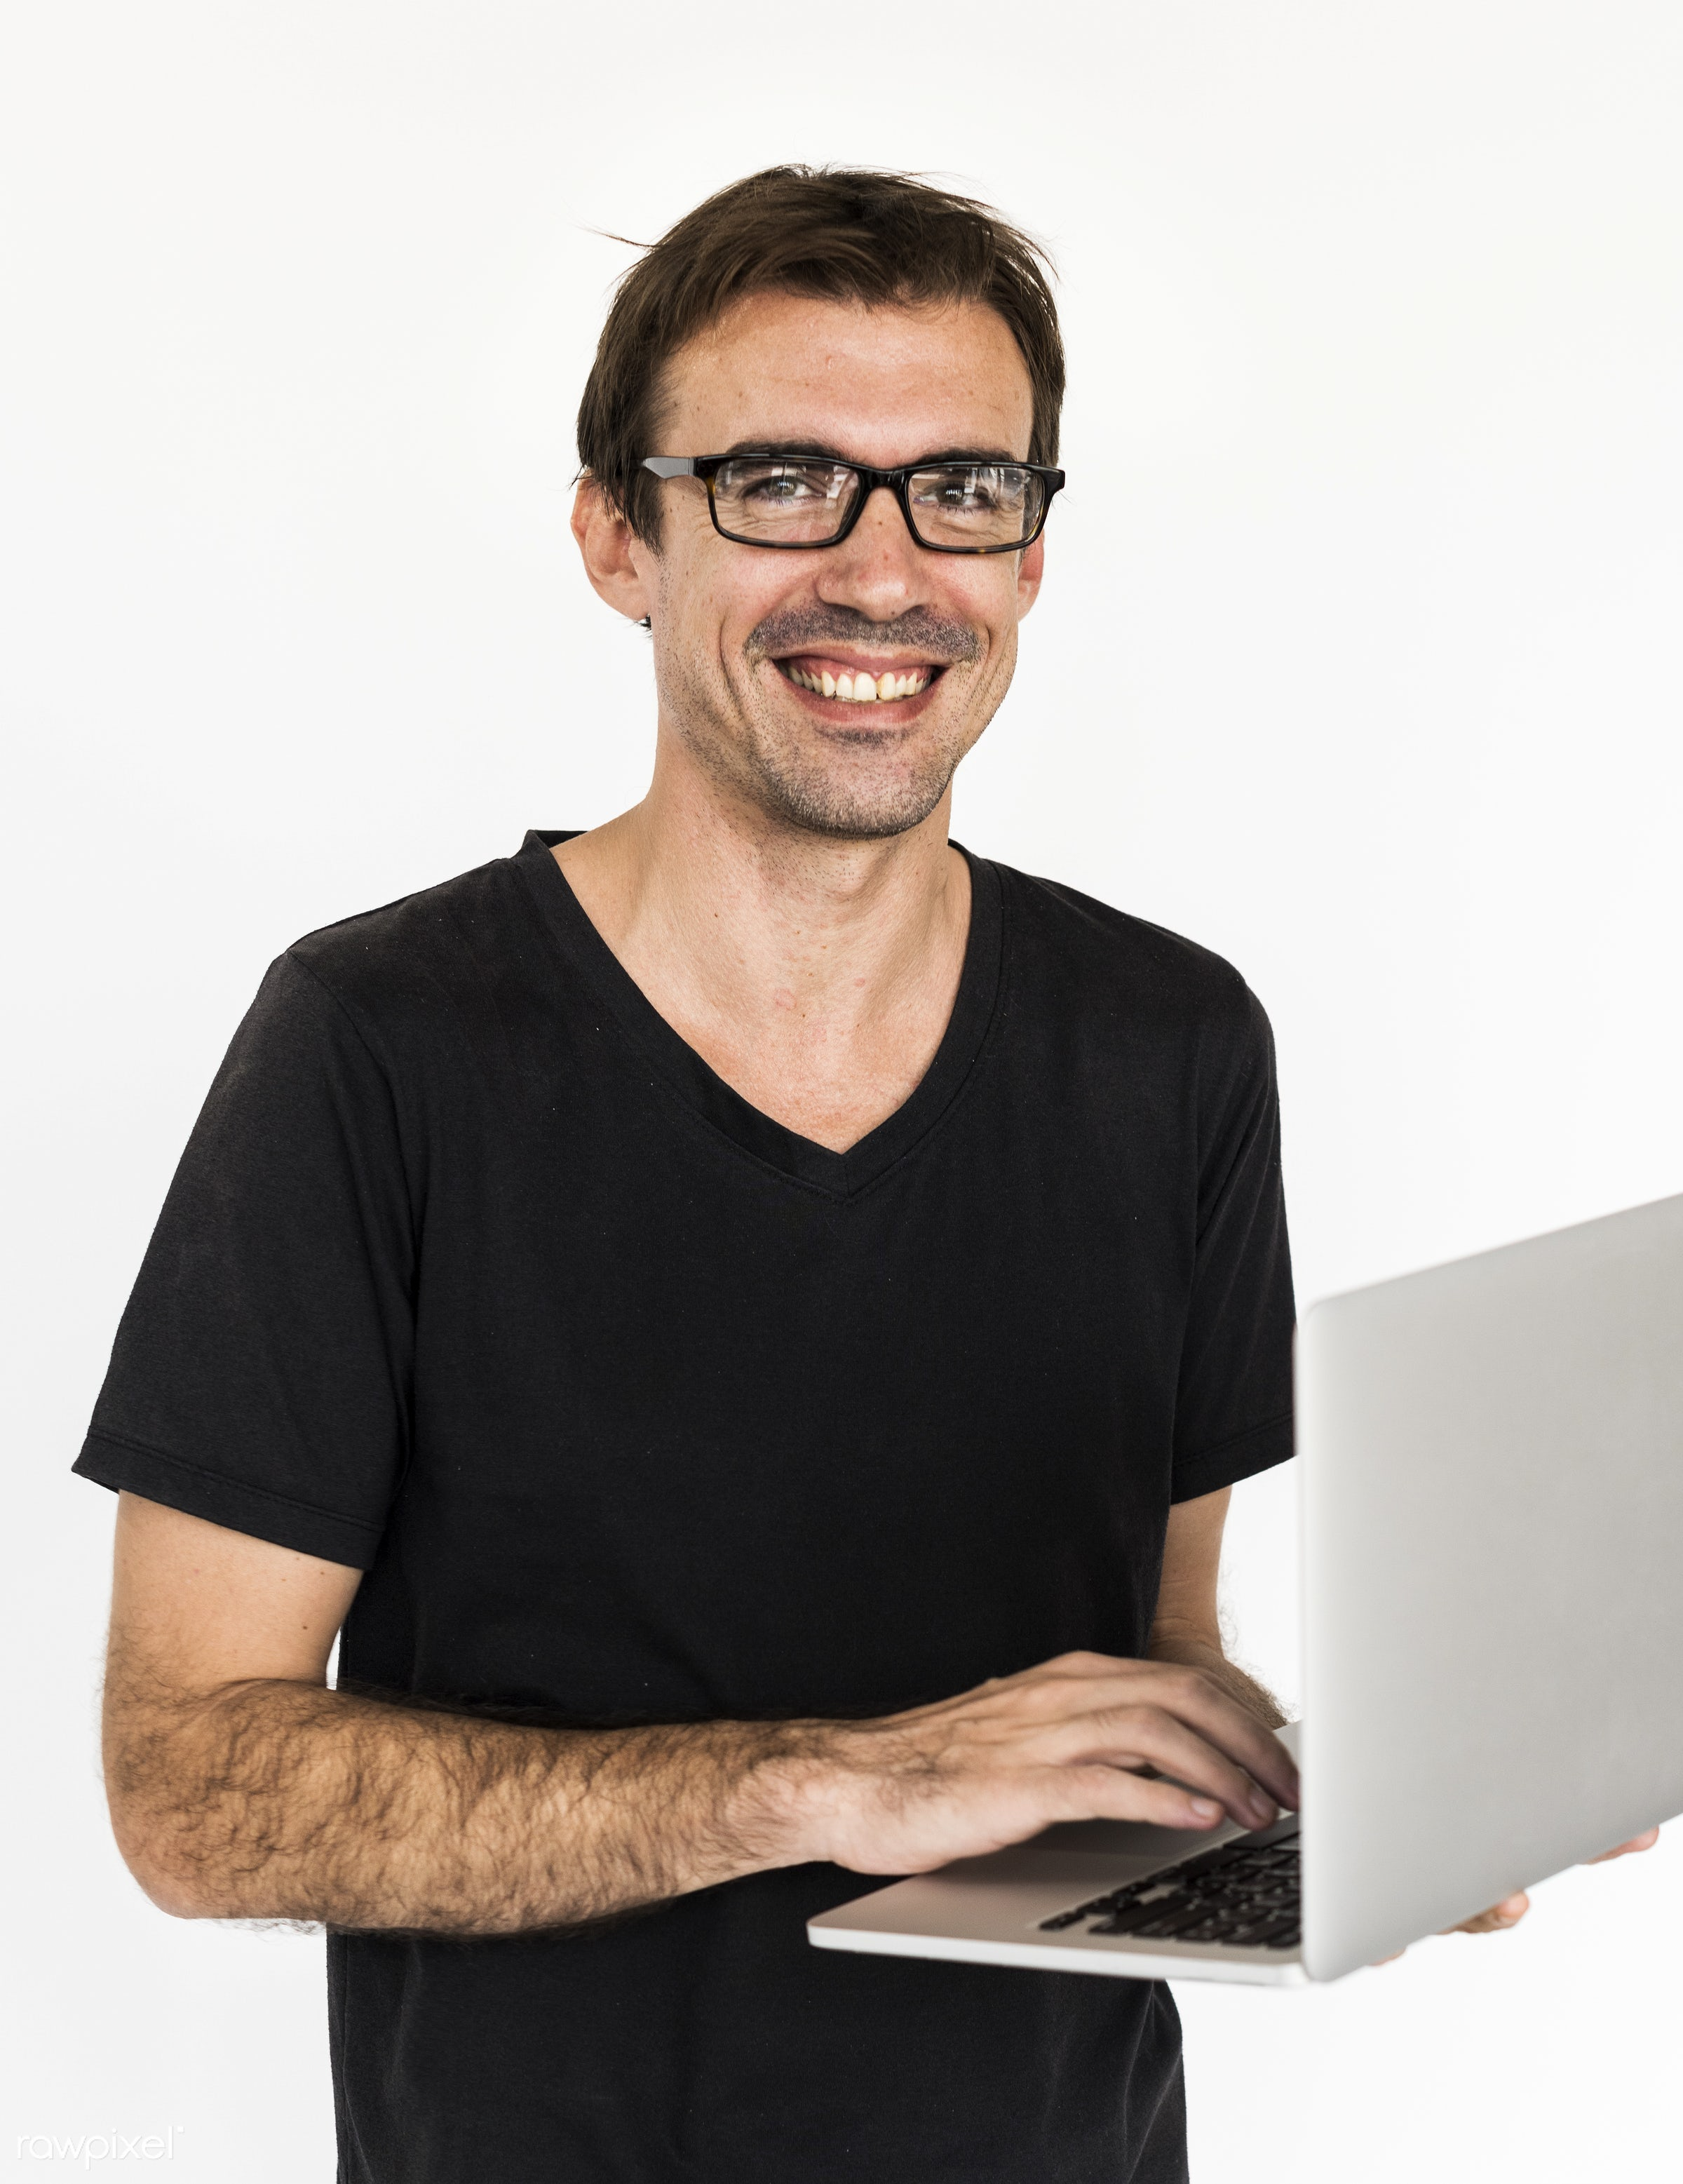 studio, impressed, using, person, technology, portable, holding, caucasian, laptop, smile, positive, cheerful, isolated,...